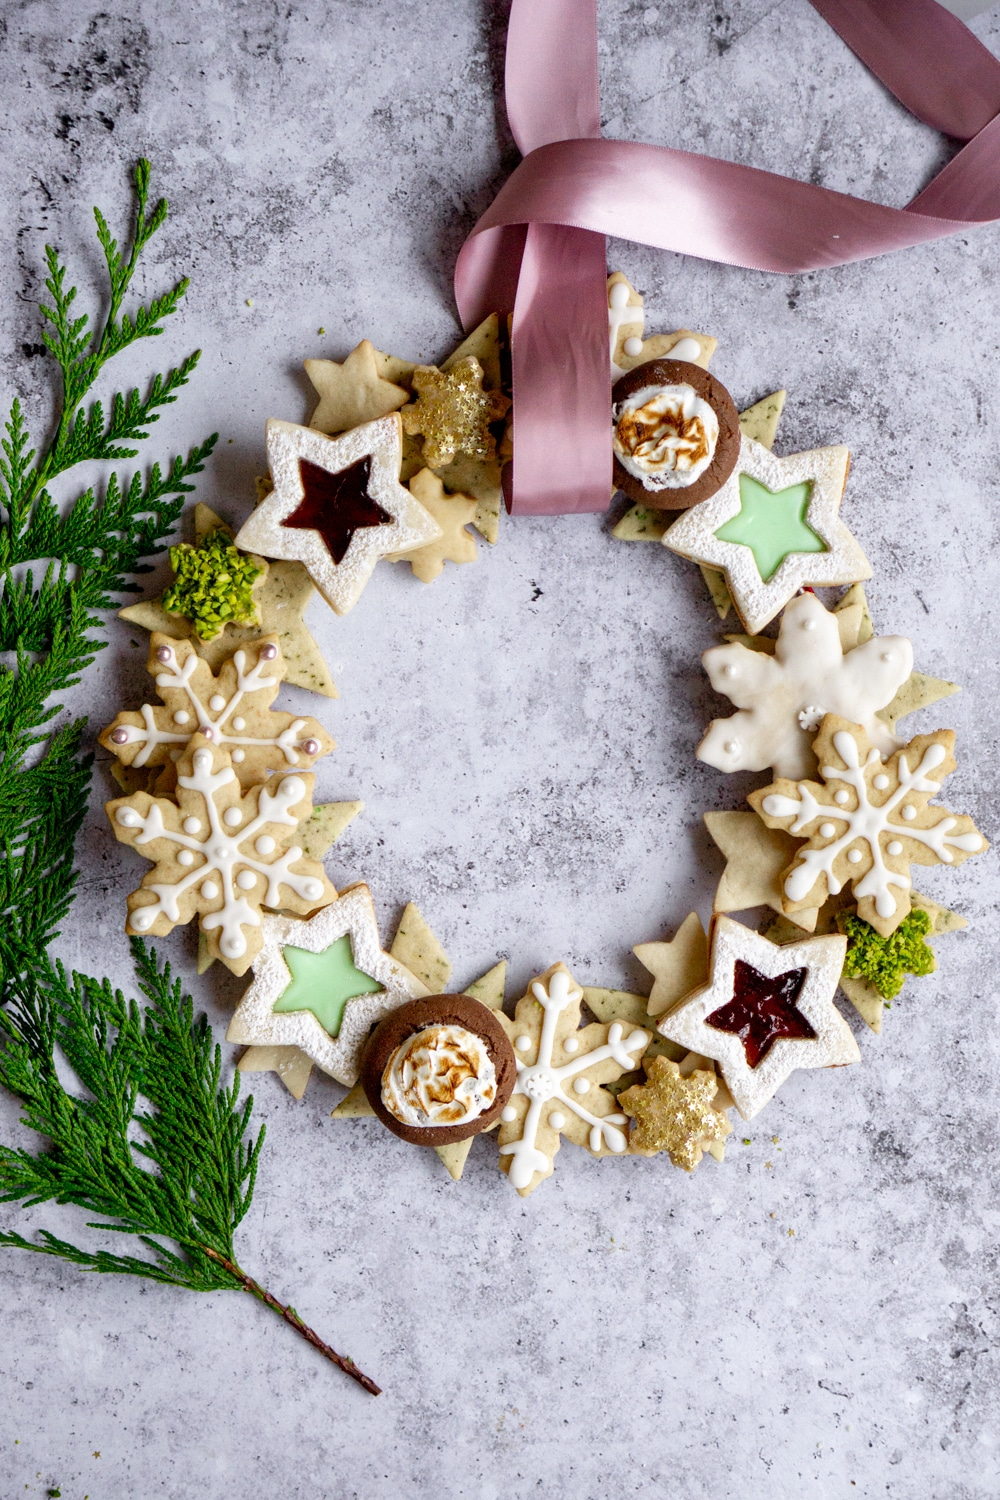 Overhead view of Christmas cookie wreath with holiday greens to the side